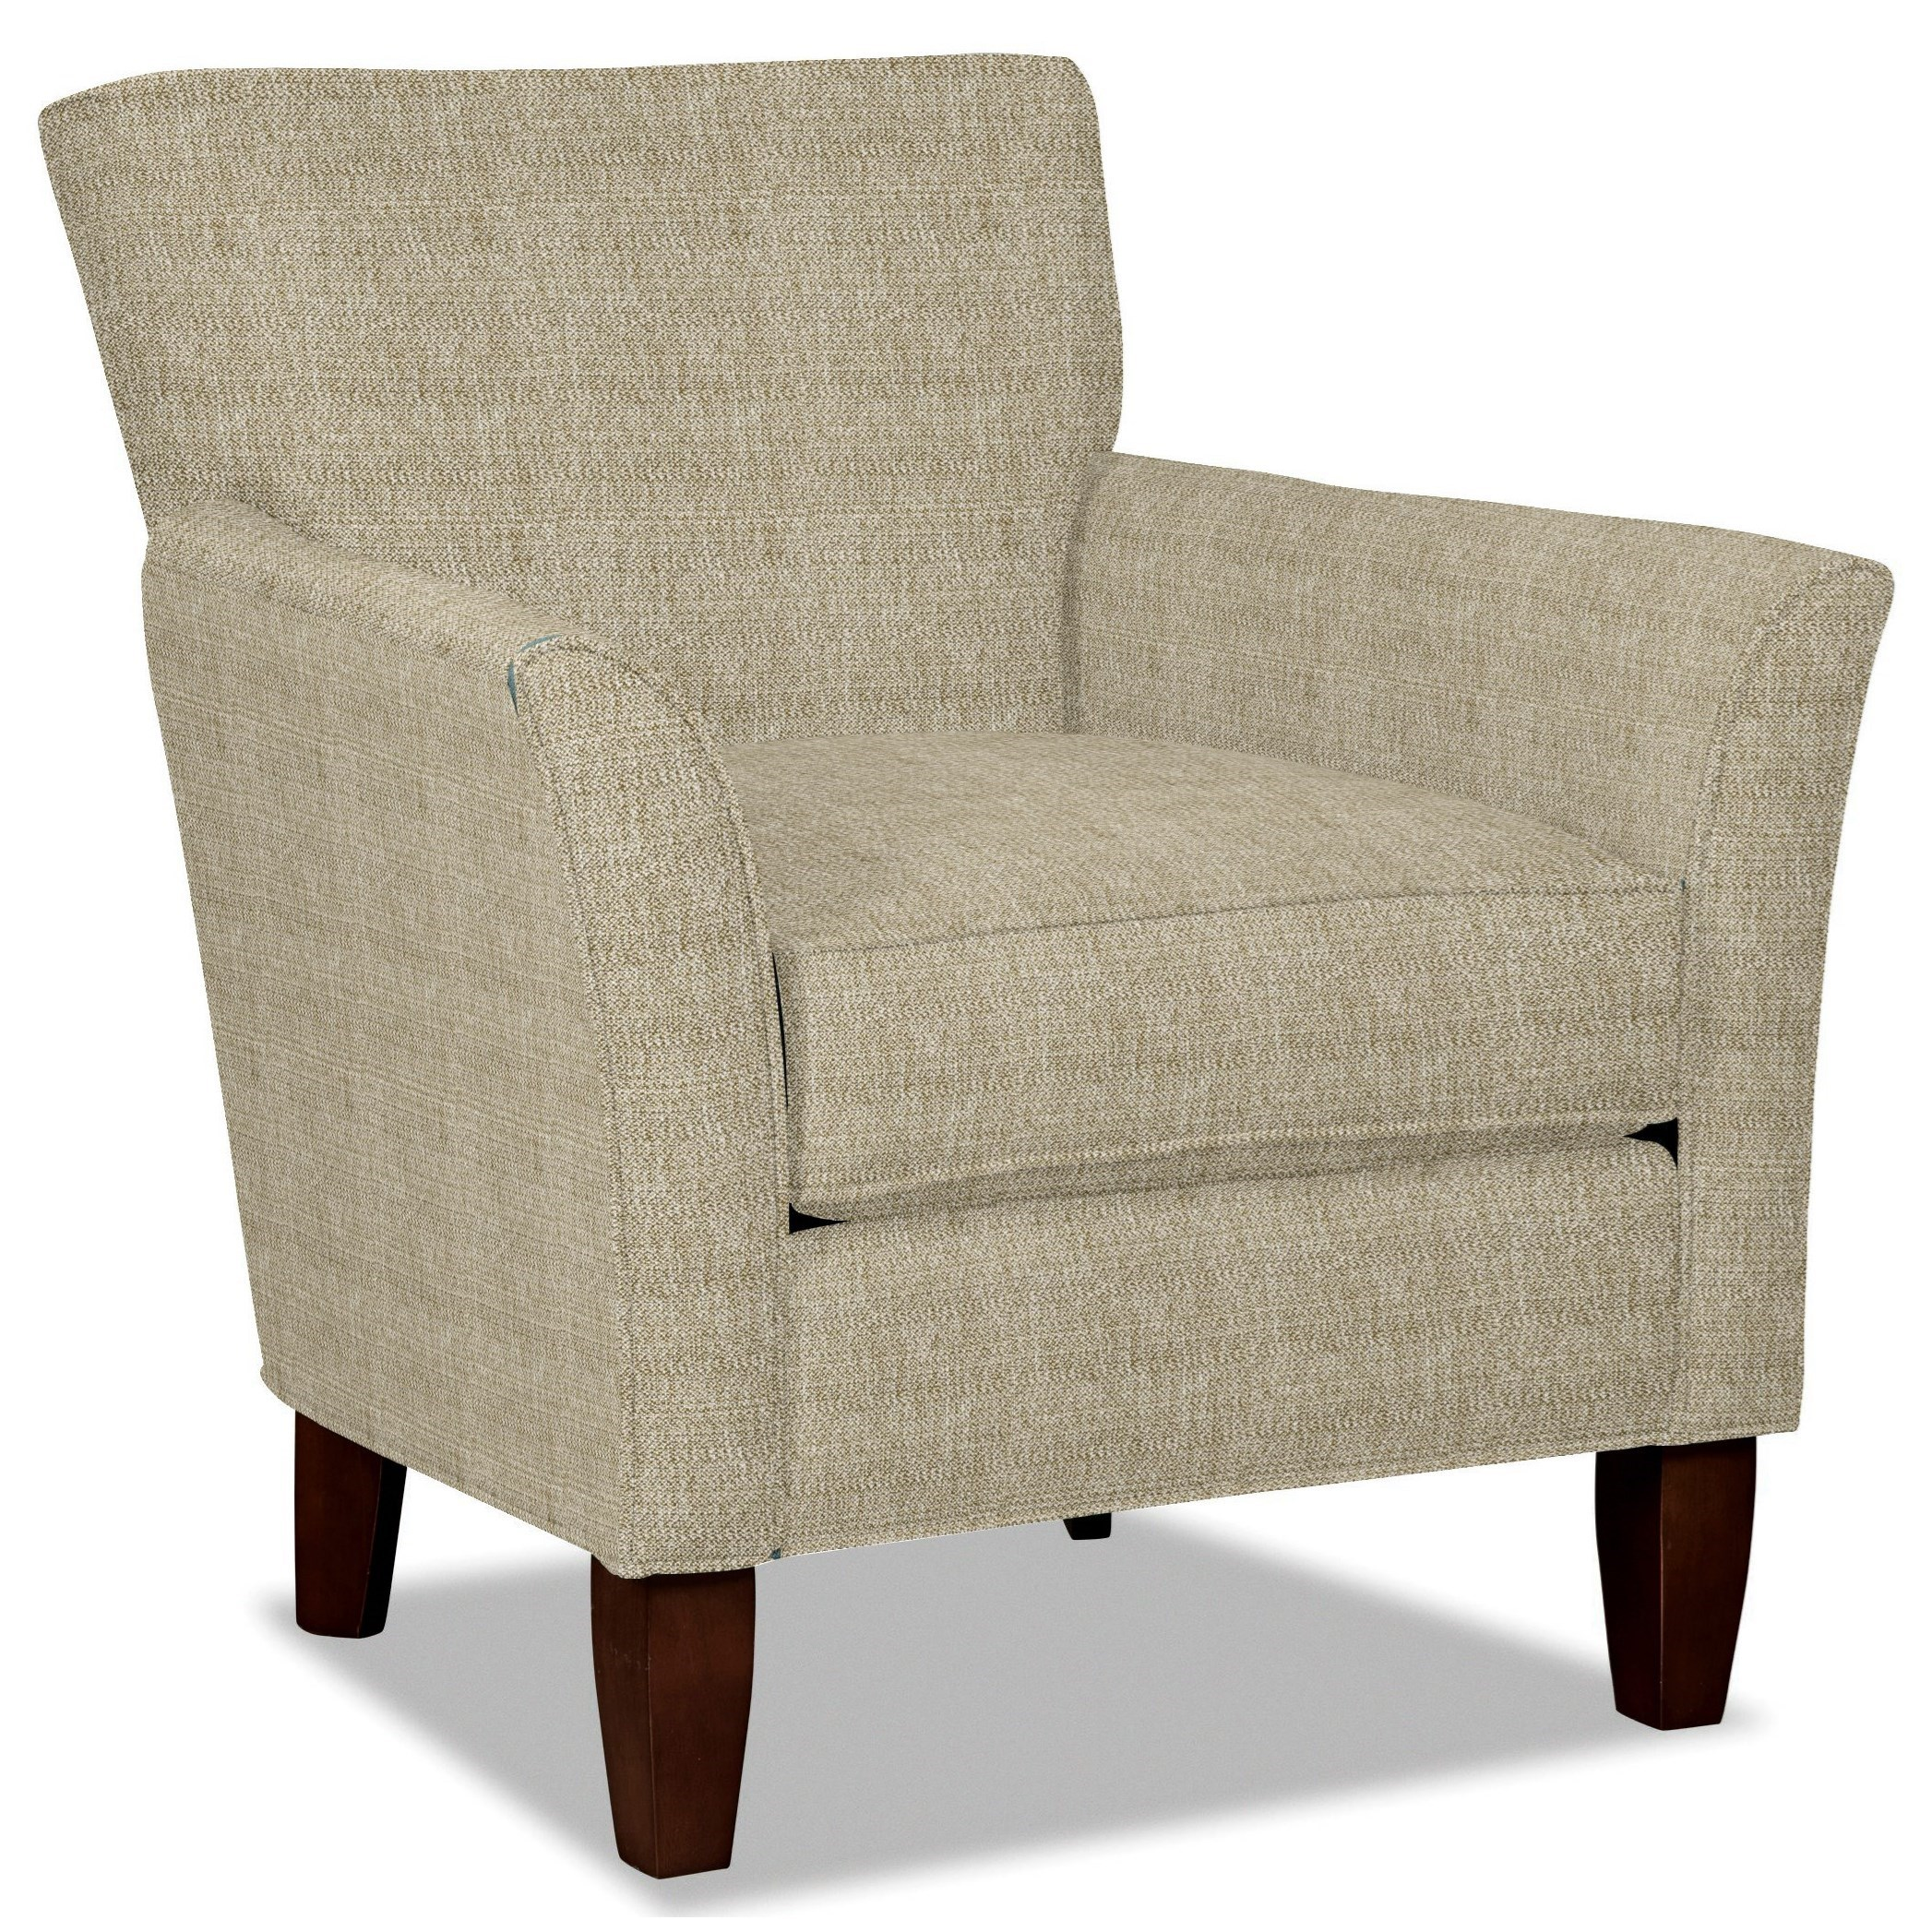 Craftmaster 060110 Accent Chair - Item Number: 060110-CARIBBEAN-10